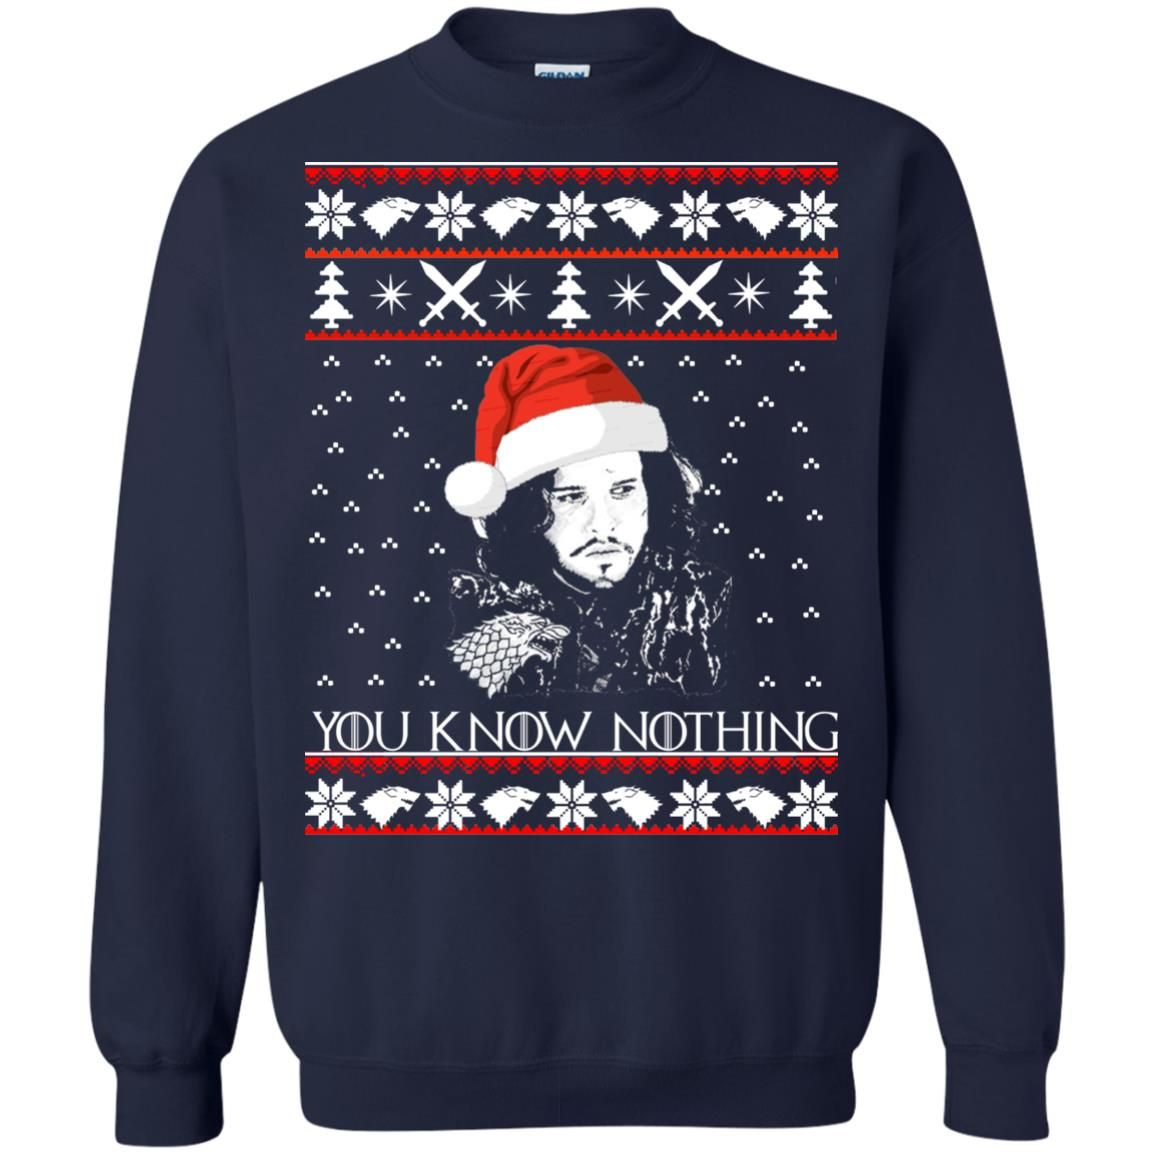 image 773 - Jon Snow: You Know Nothing Ugly Christmas Sweater, long sleeve